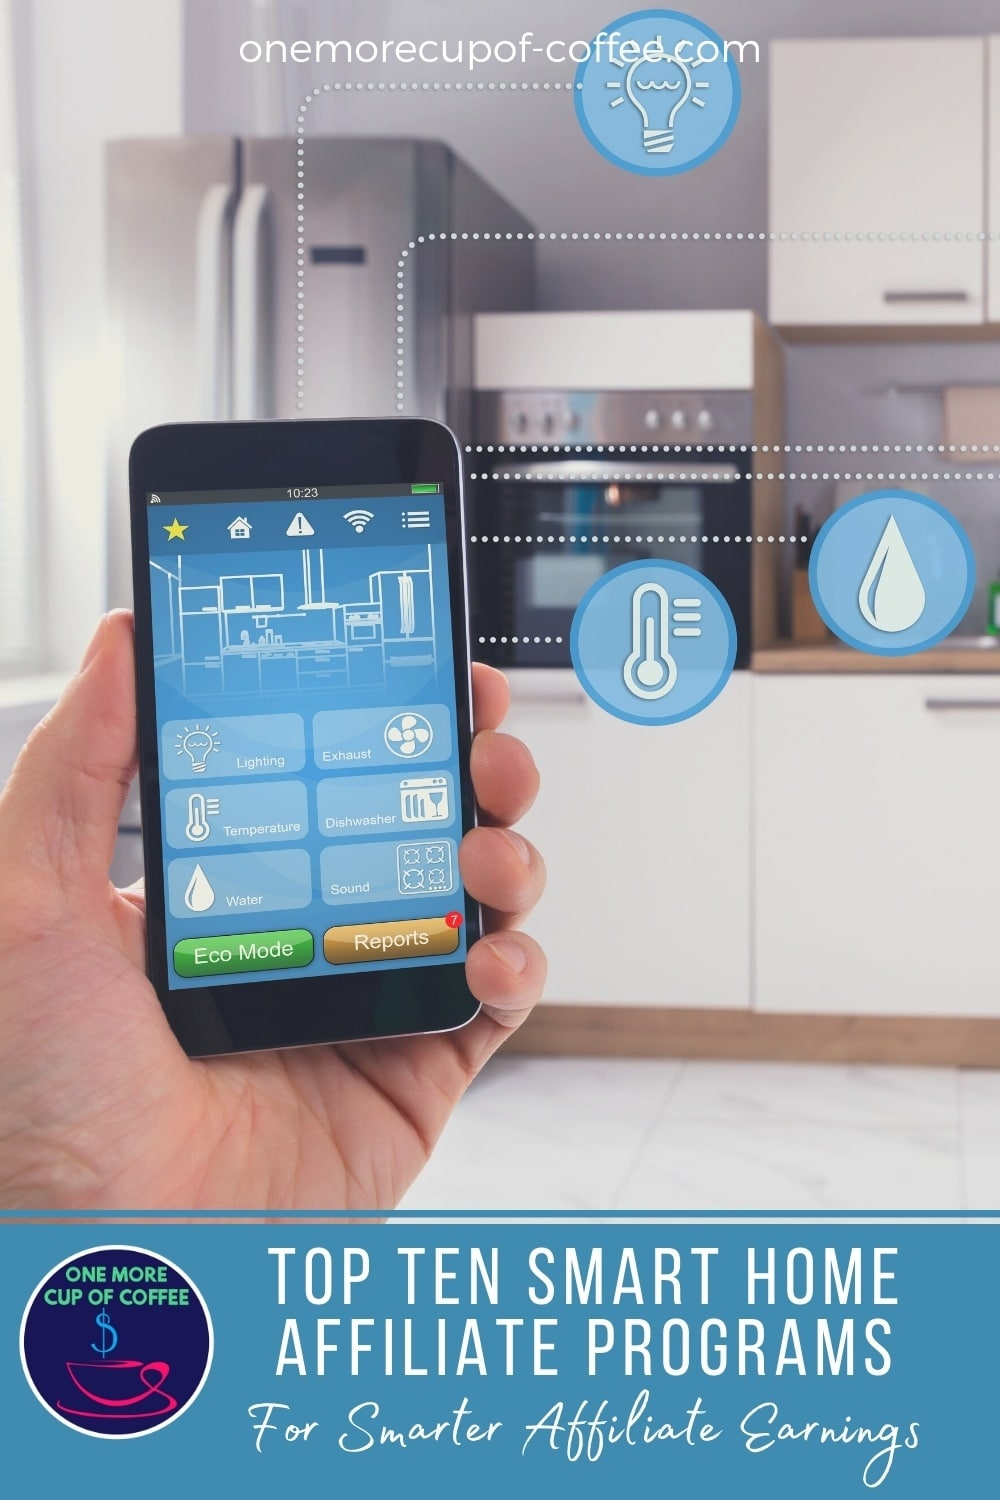 """smartphone controlling home temperature, lighting, water, and others; with text overlay at the bottom in blue banner """"Top Ten Smart Home Affiliate Programs For Smarter Affiliate Earnings"""""""